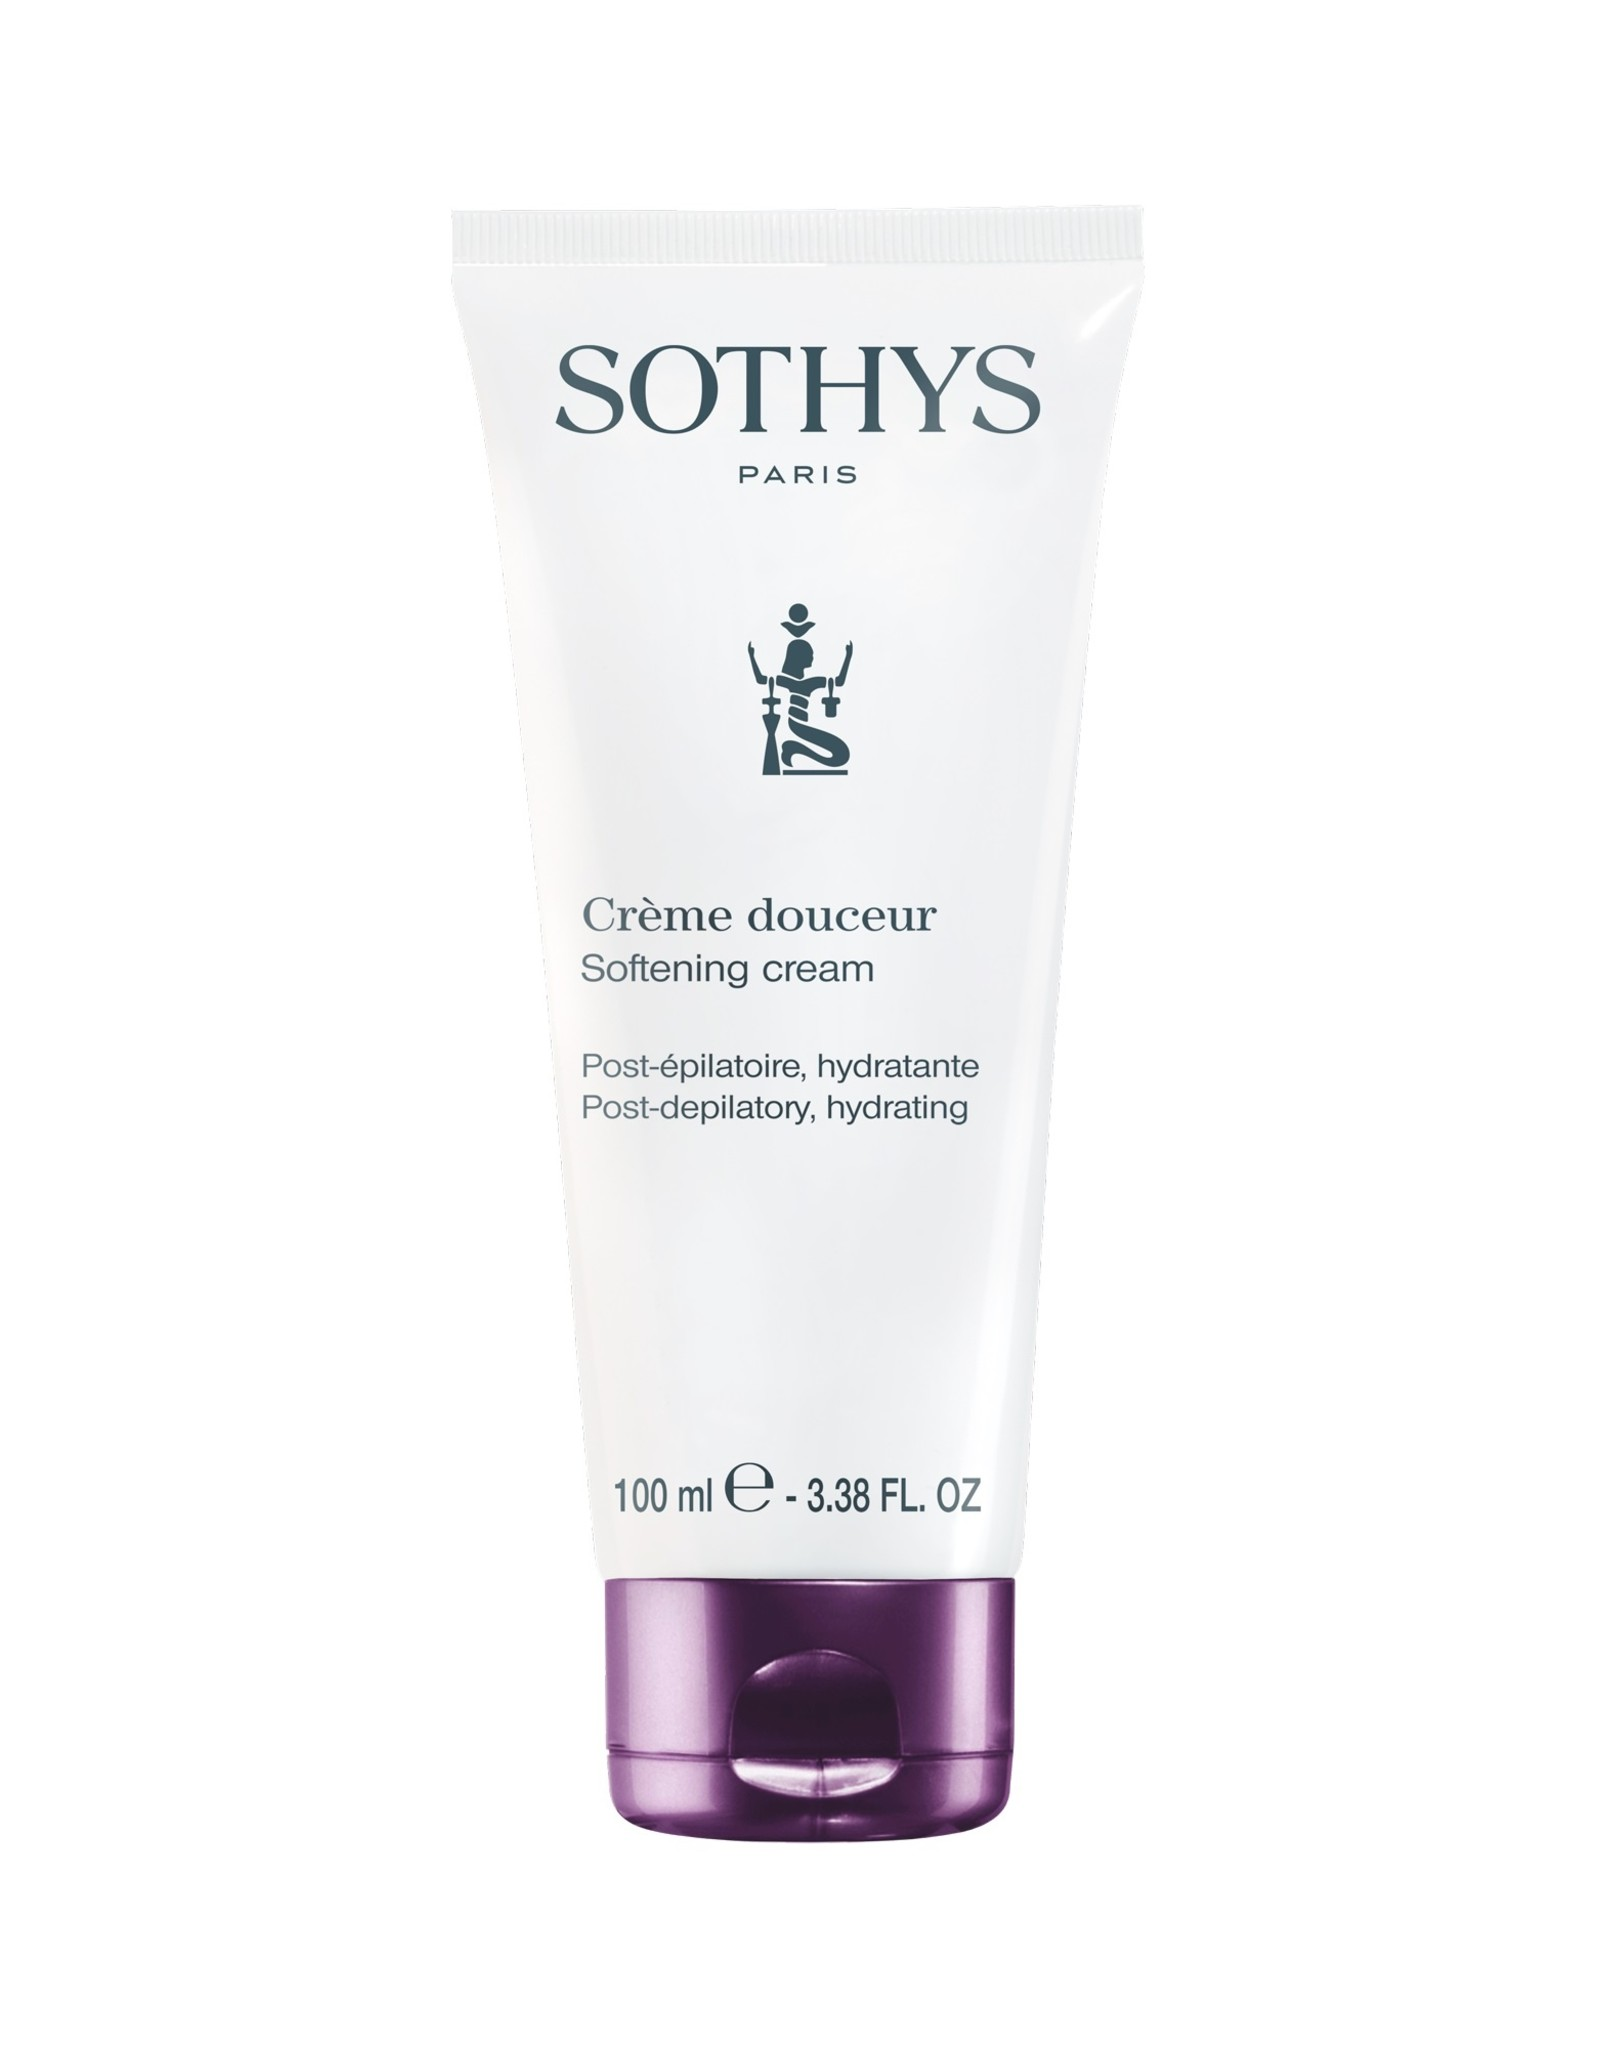 SOTHYS Post-depilatory cream - Sothys